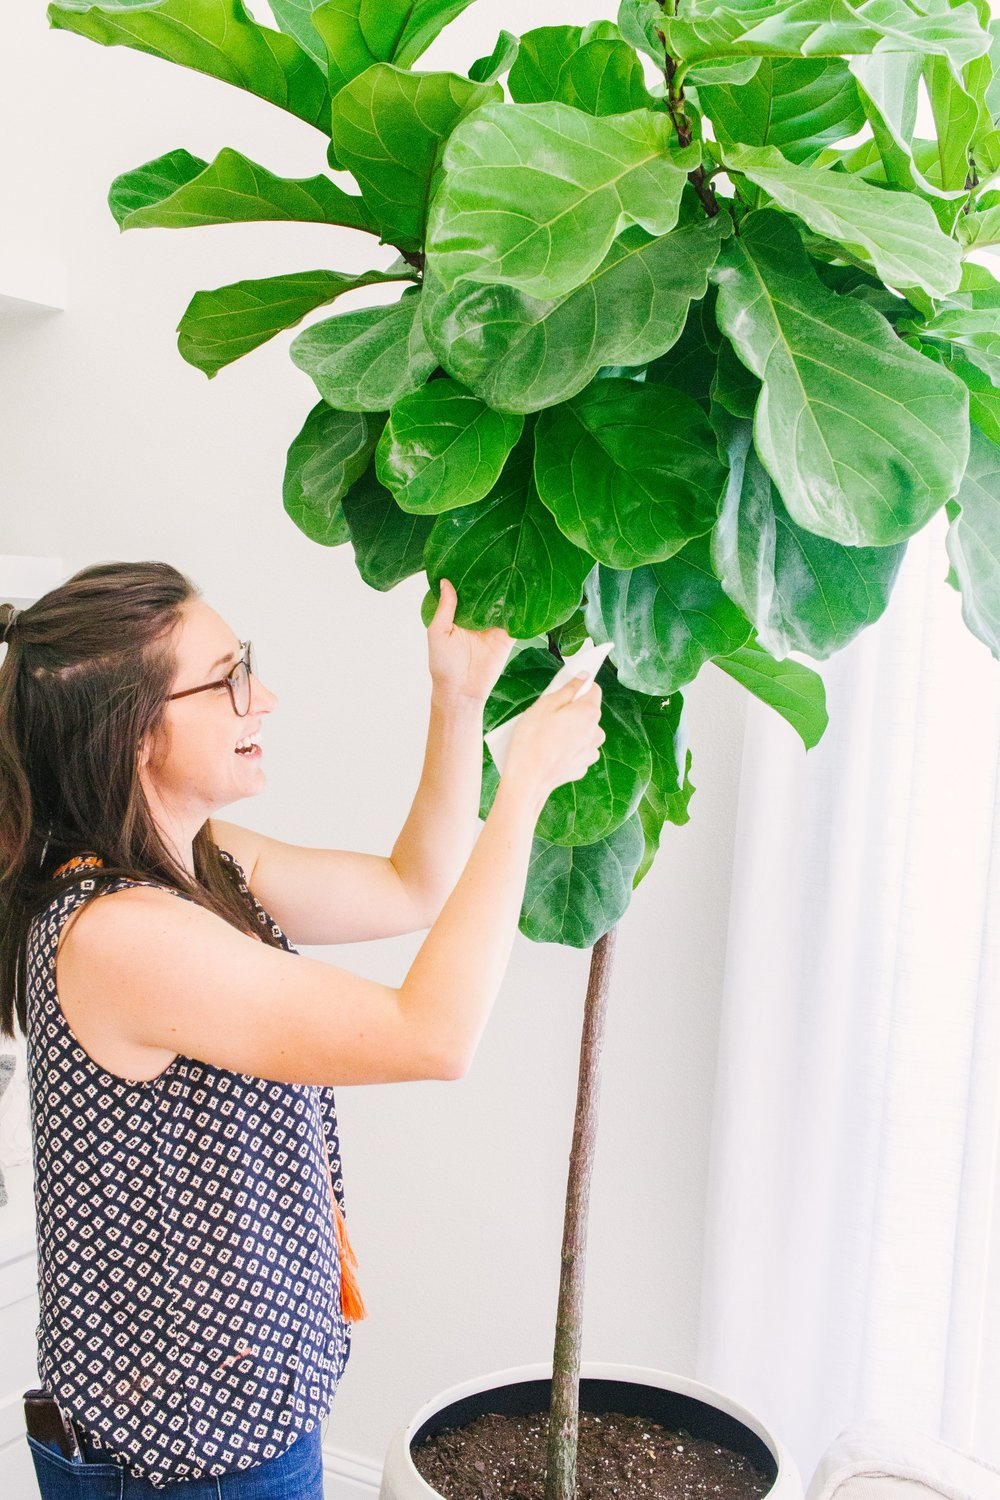 Our House Plants - Our House Plants - Fiddle Leaf Fig Care Tips